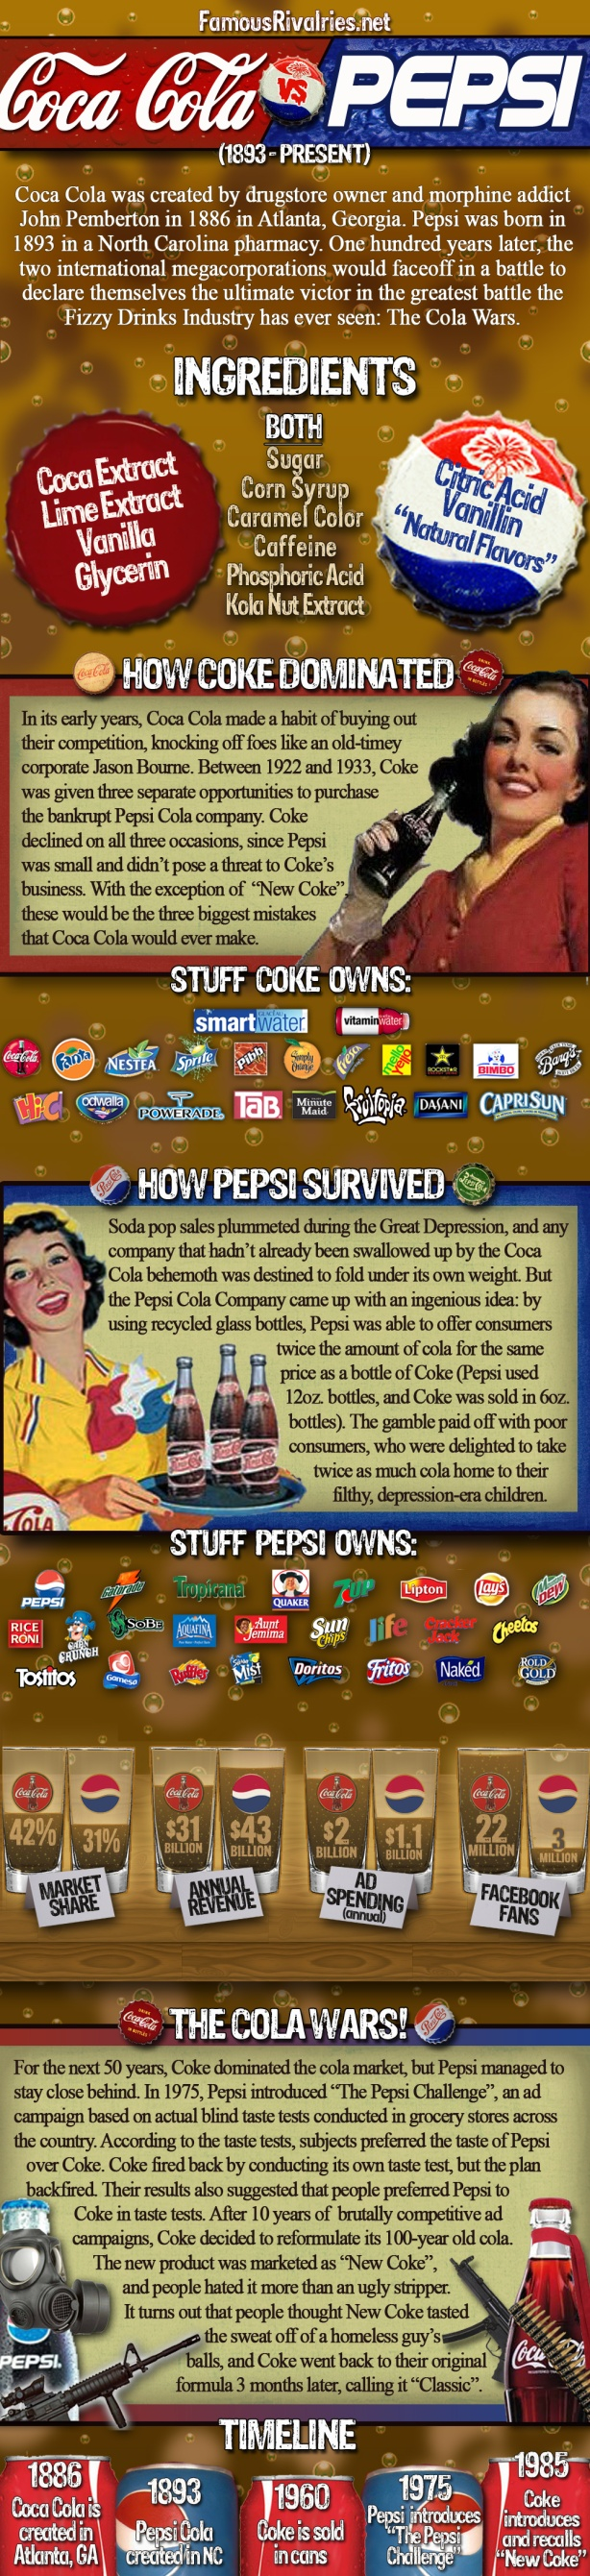 famous rivalries coke vs pepsi the cola wars soda, coca cola pepsi cola